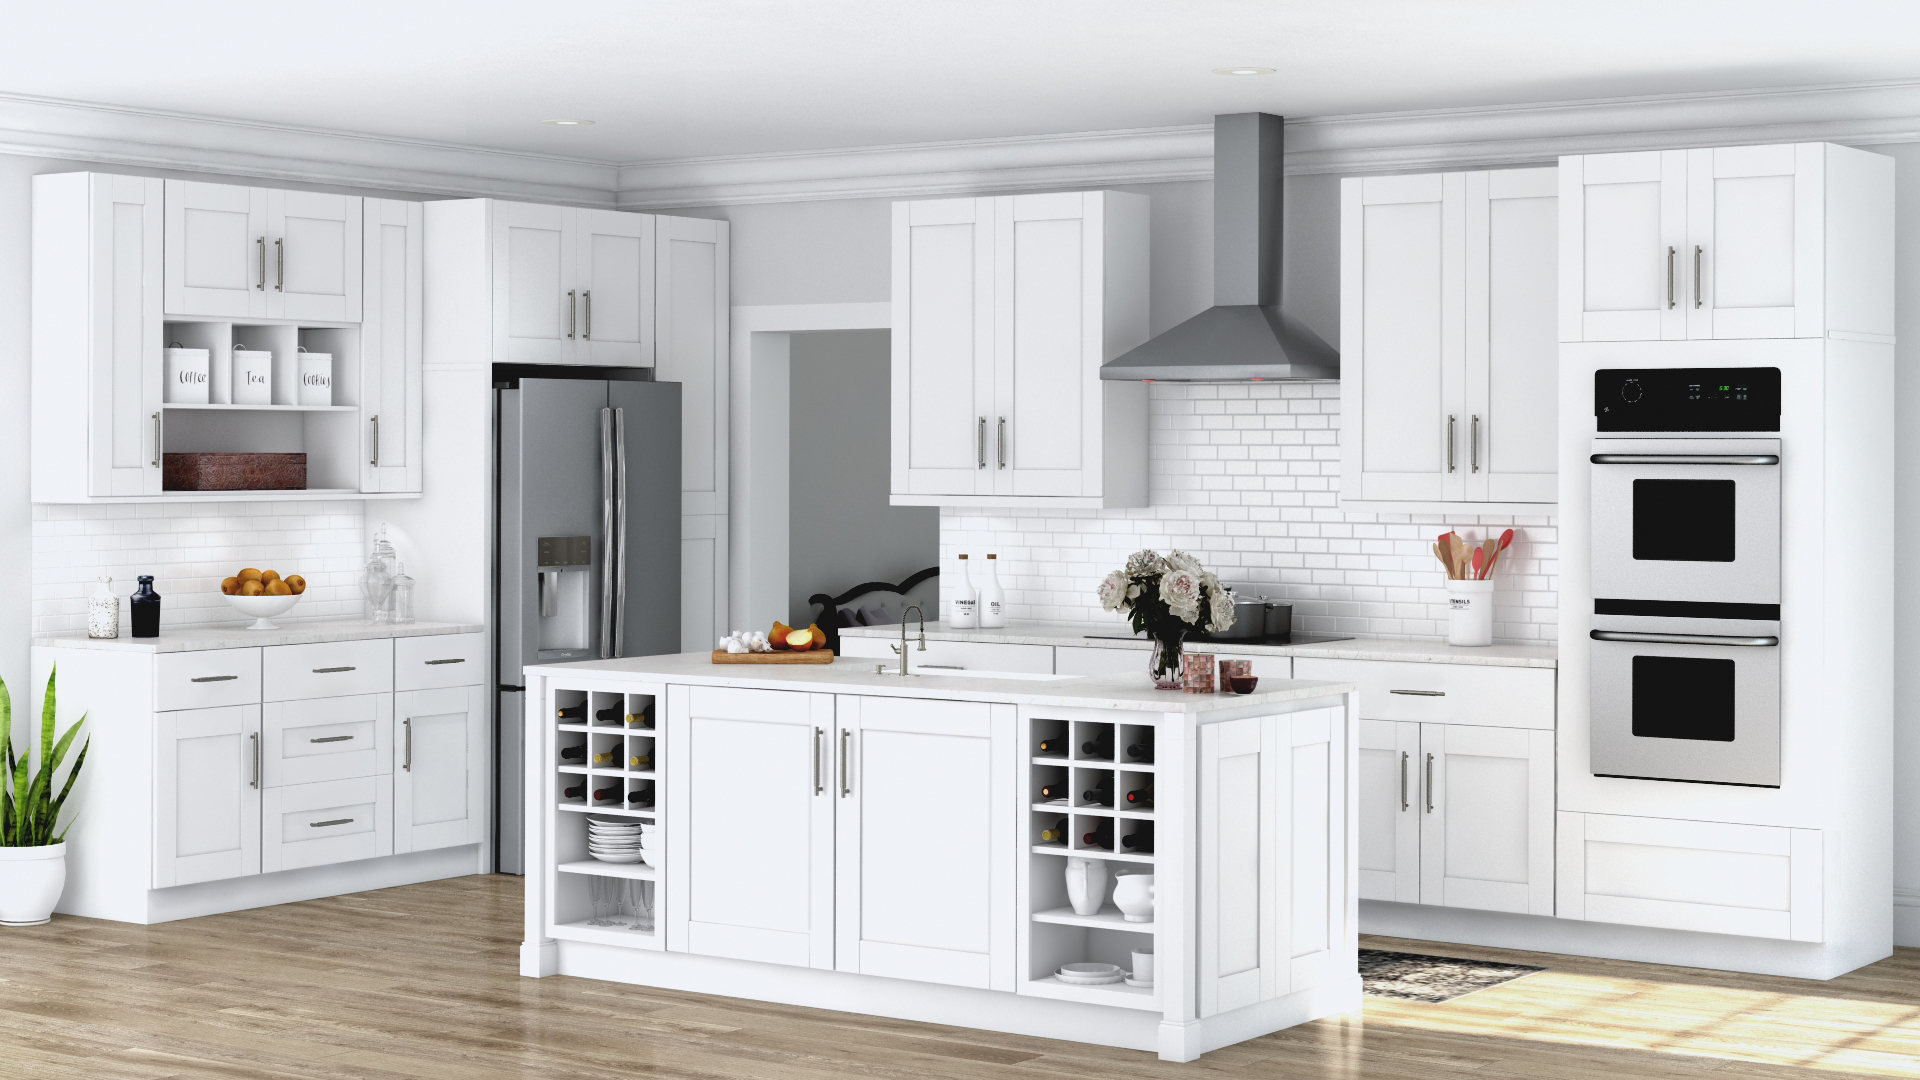 Cupboards Kitchen Shaker Wall Cabinets In White Kitchen The Home Depot